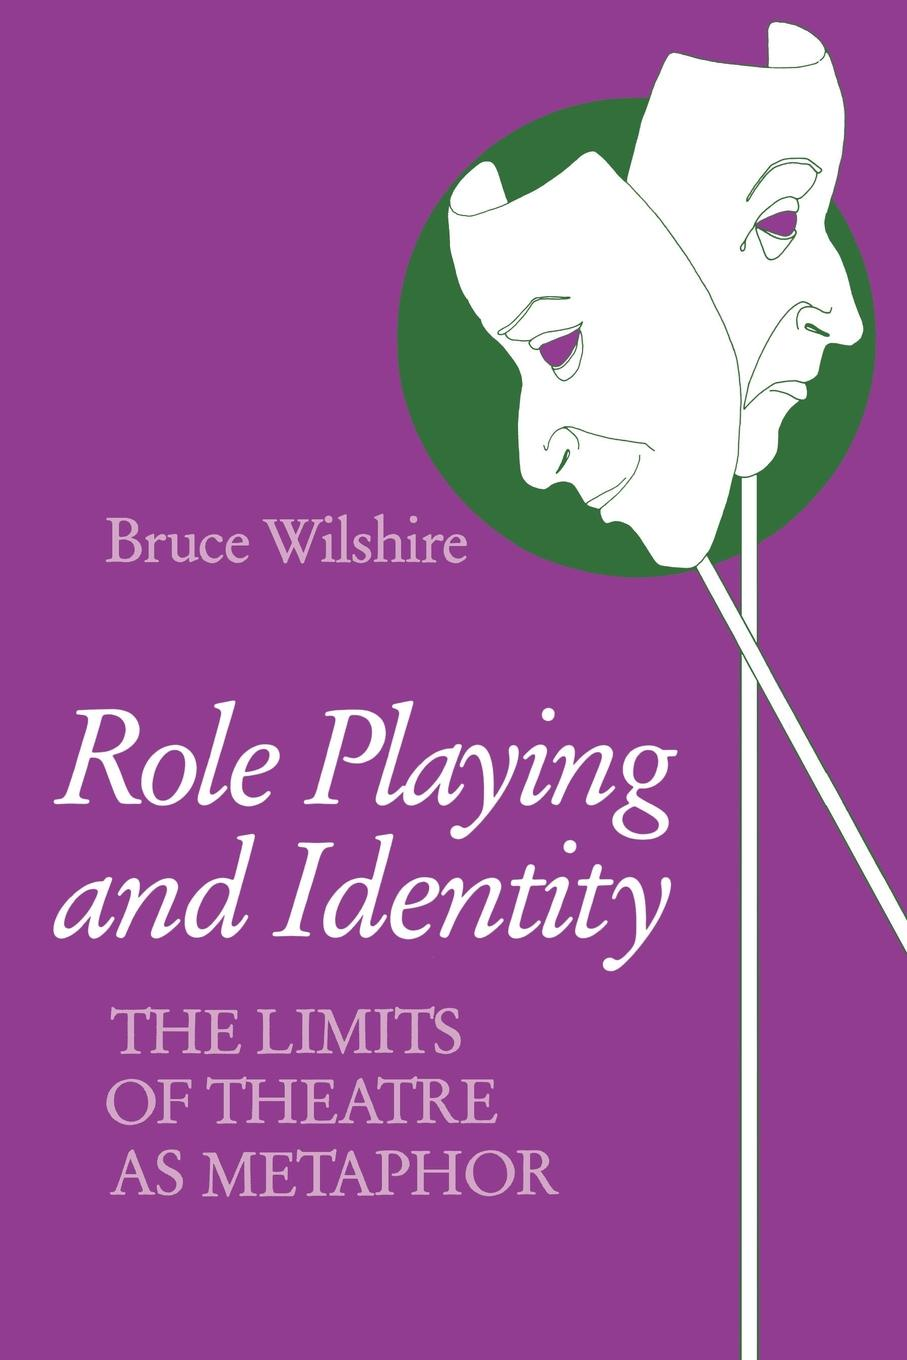 Bruce Wilshire Role Playing and Identity. The Limits of Theatre as Metaphor